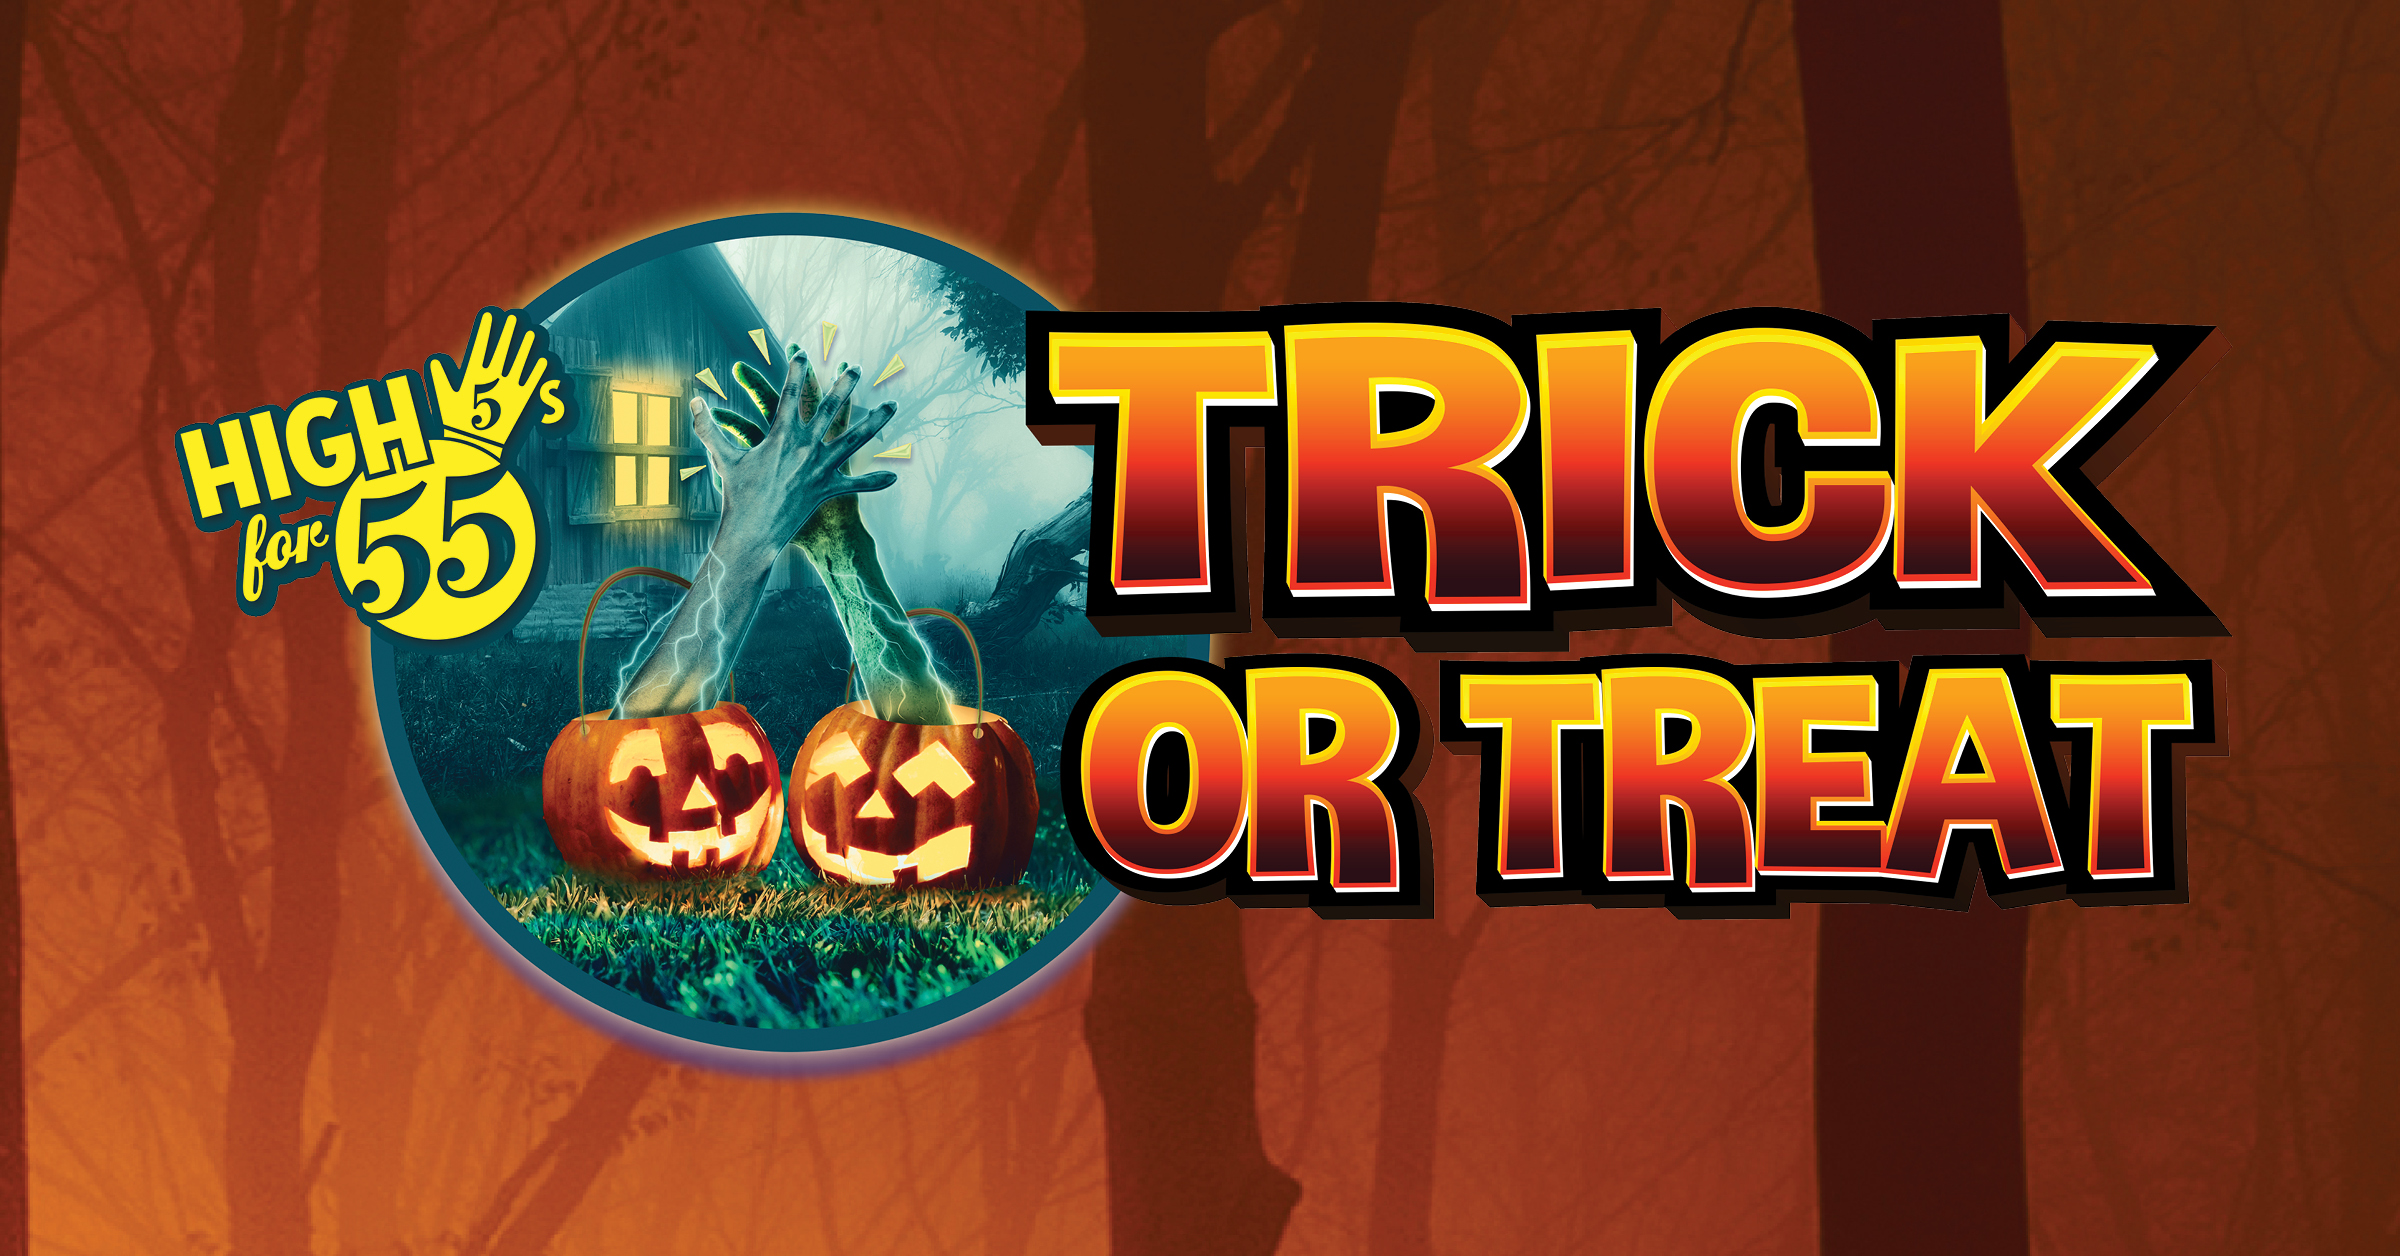 High 5s for 55s - Trick or Treat